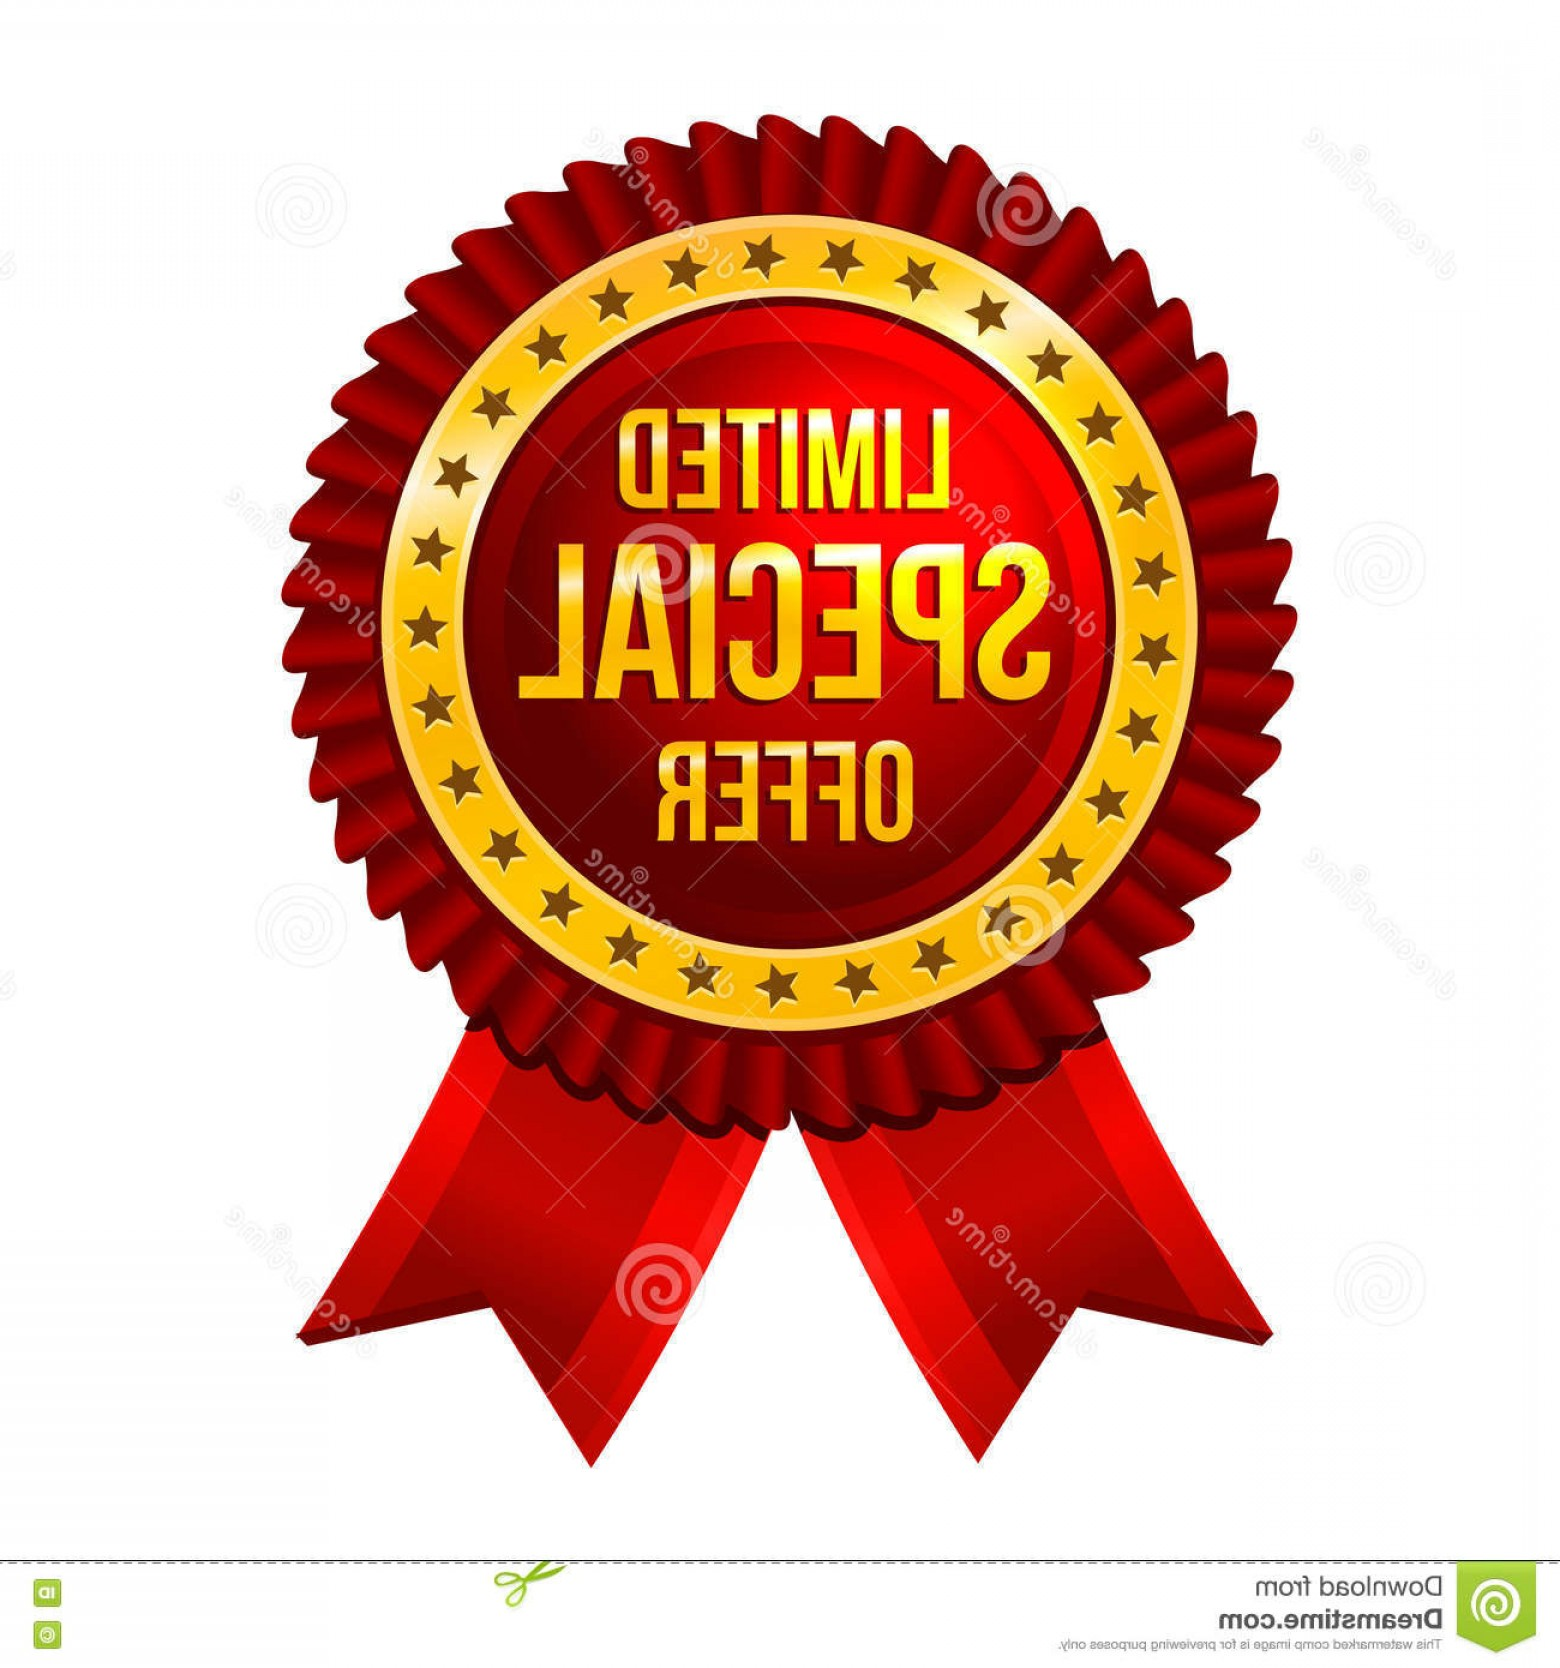 Special Offer Vector: Stock Photos Lbel Limited Special Offer Ribbons Vector Illustration Image